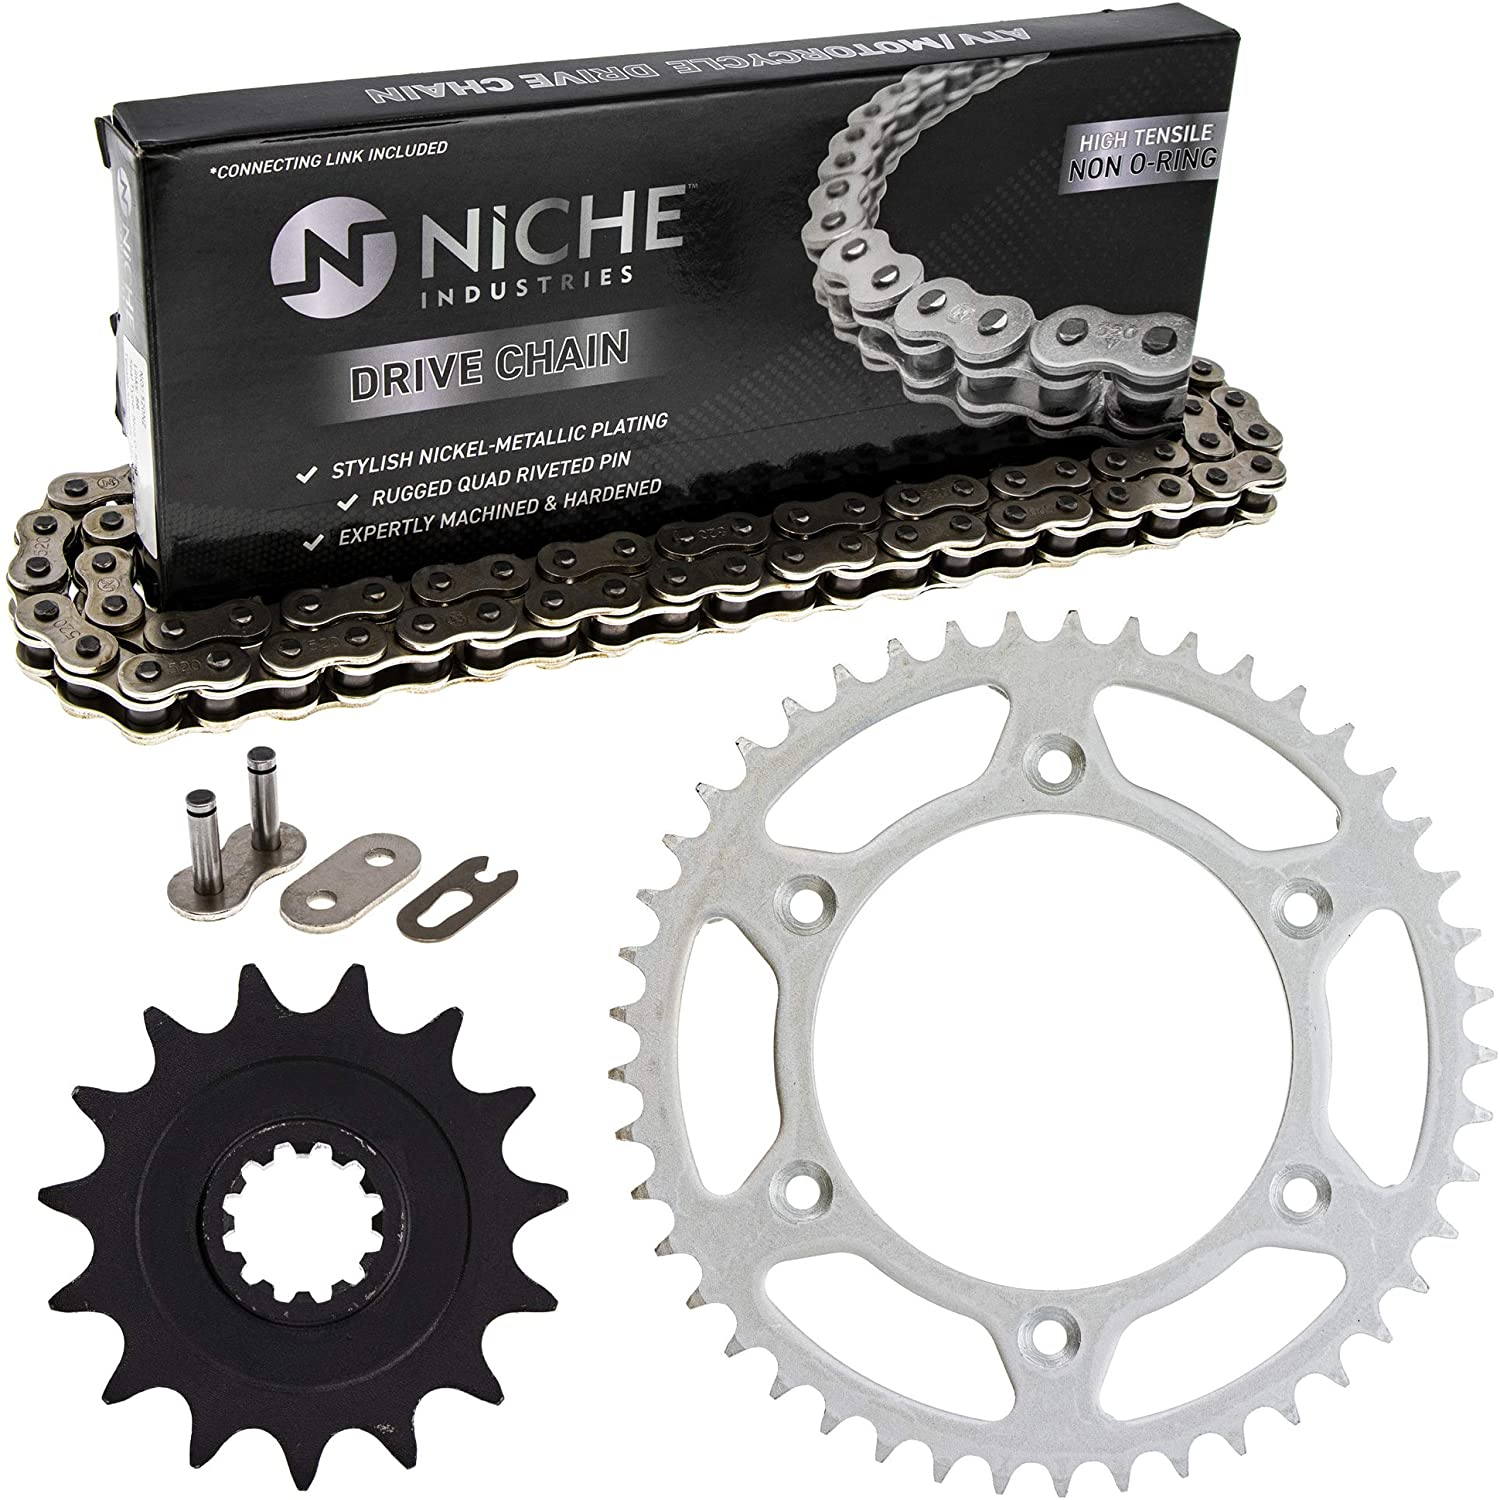 NICHE Drive Sprocket Chain Combo for Husaberg FE650E Front 15 Rear 45 Tooth 520NZ Standard 114 Links